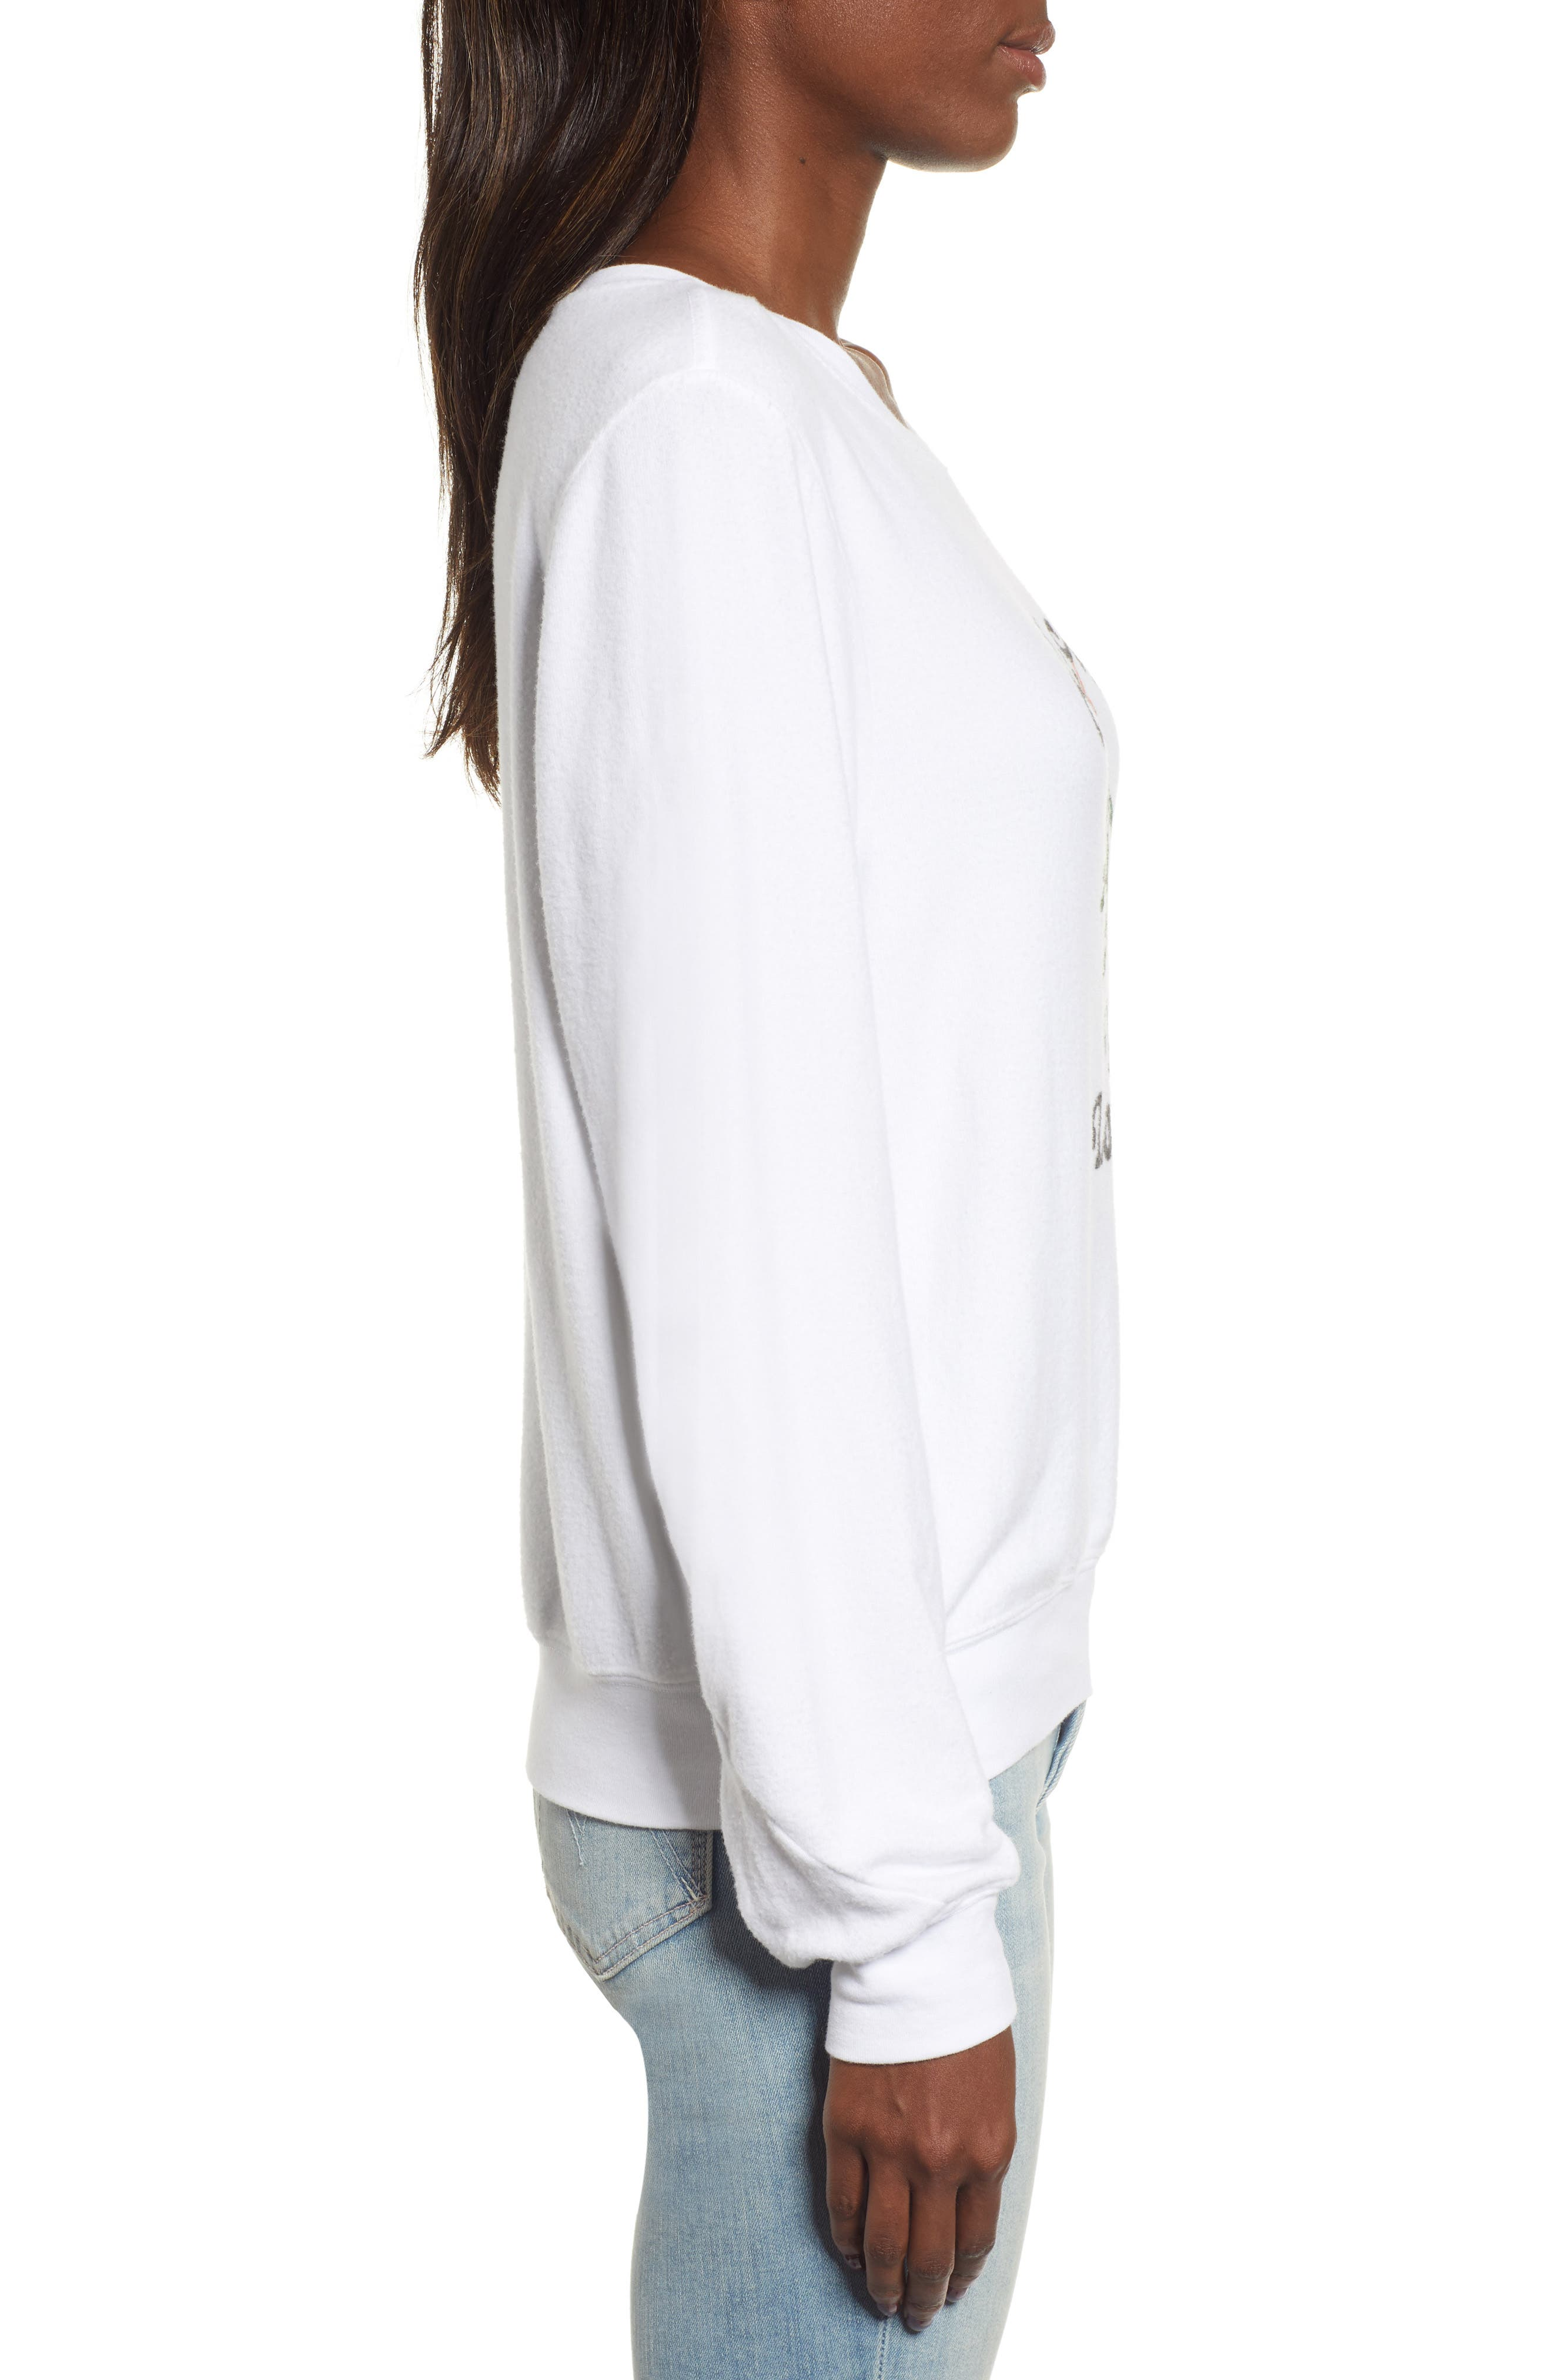 Baggy Beach Jumper - Yule Love It Pullover,                             Alternate thumbnail 3, color,                             CLEAN WHITE